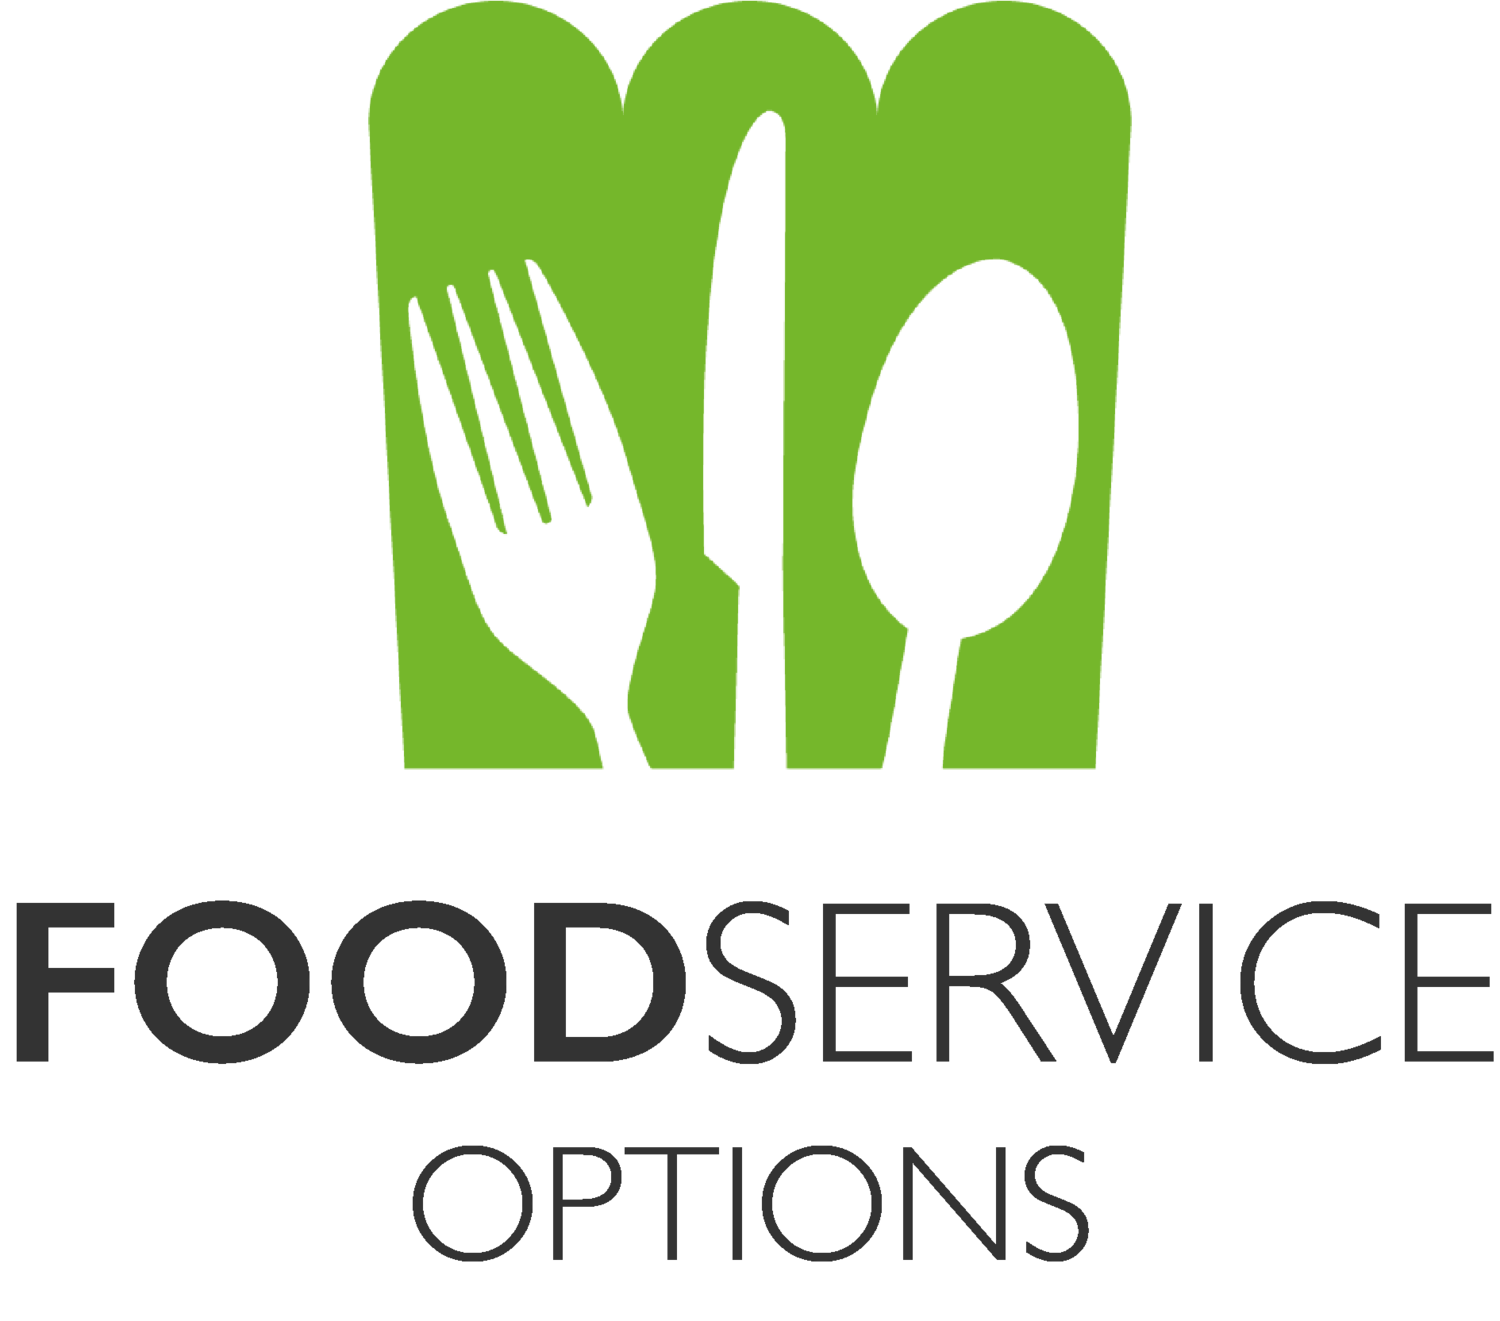 FOODSERVICE OPTIONS